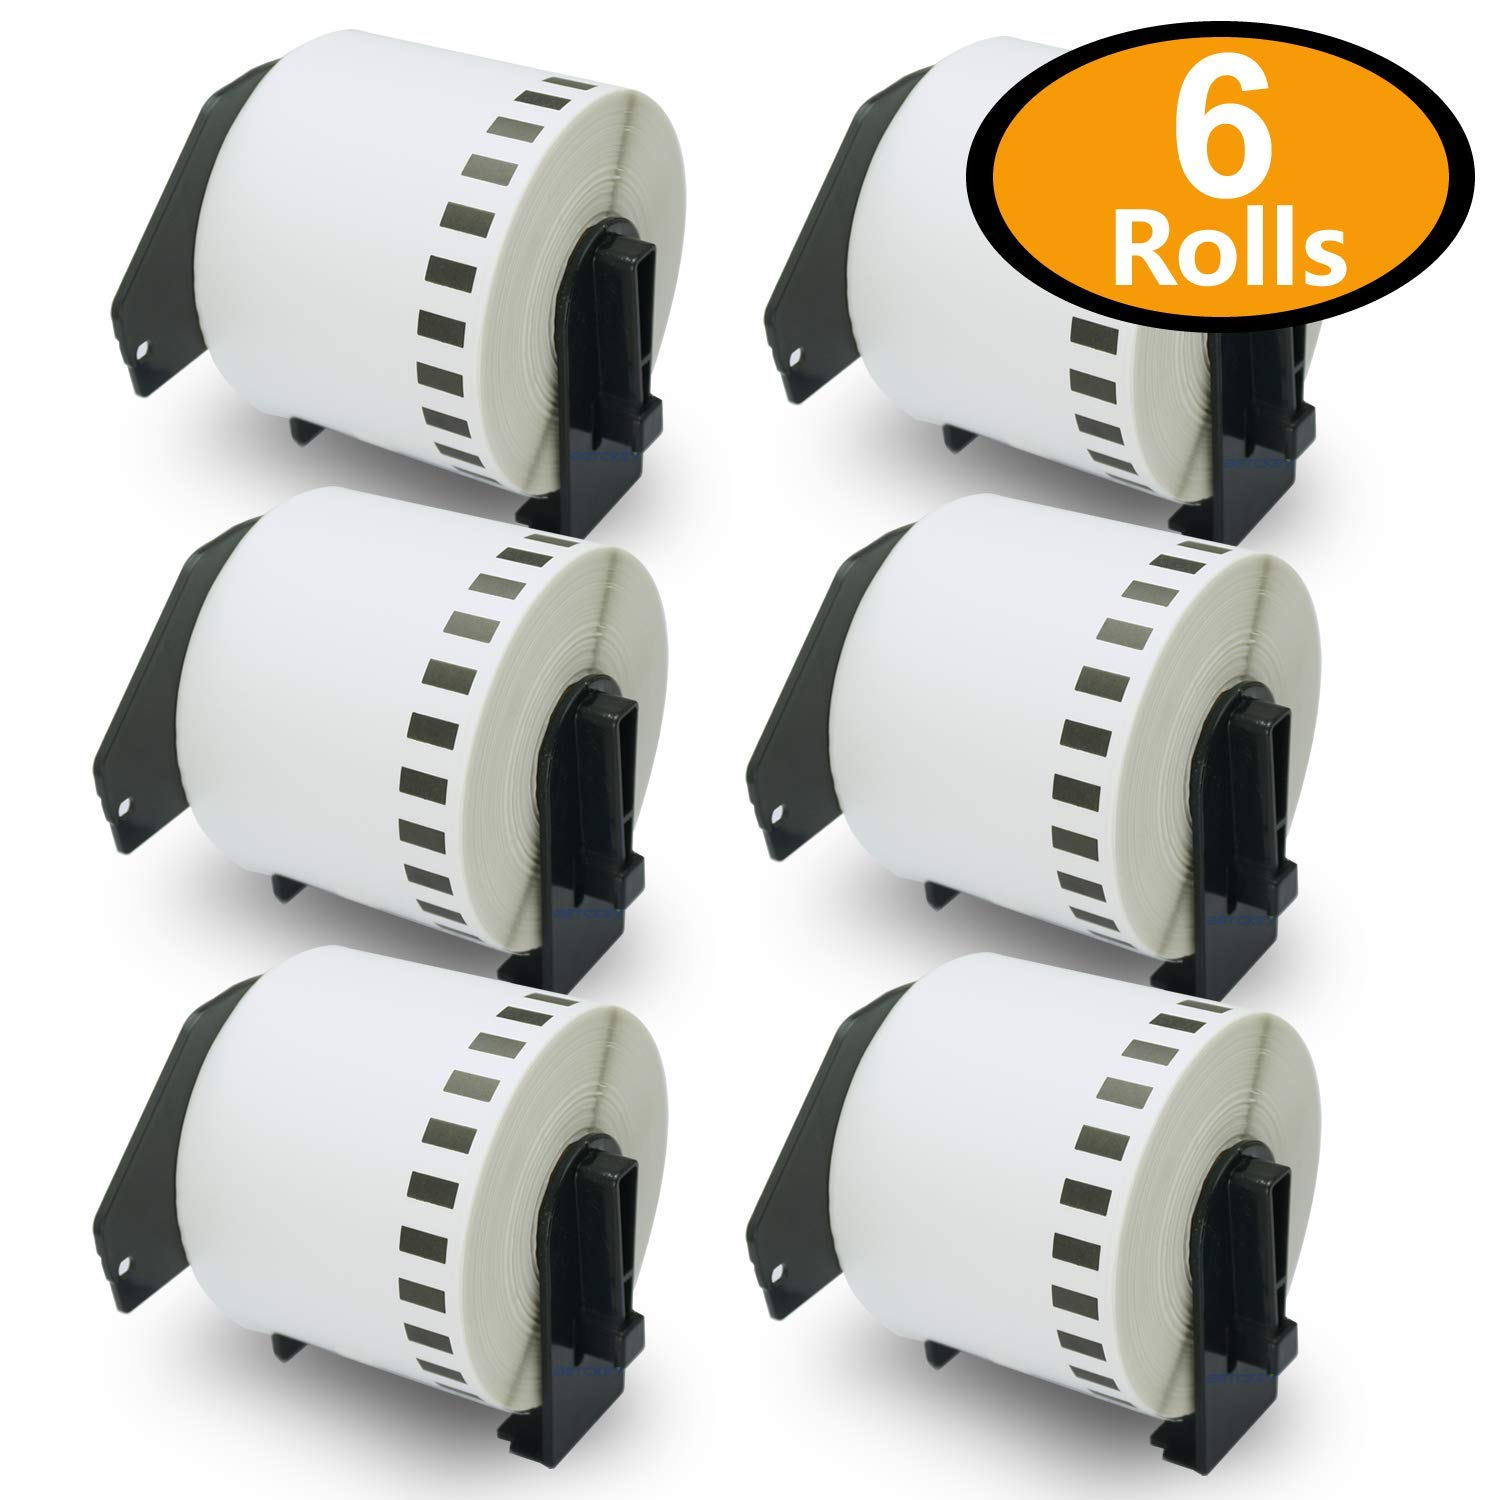 BETCKEY - 6 Rolls Compatible Brother DK-4205 Removable Continuous Labels 62mm x 30.48m(2-3/7'' x 100') with Refillable Cartridge Frame by BETCKEY